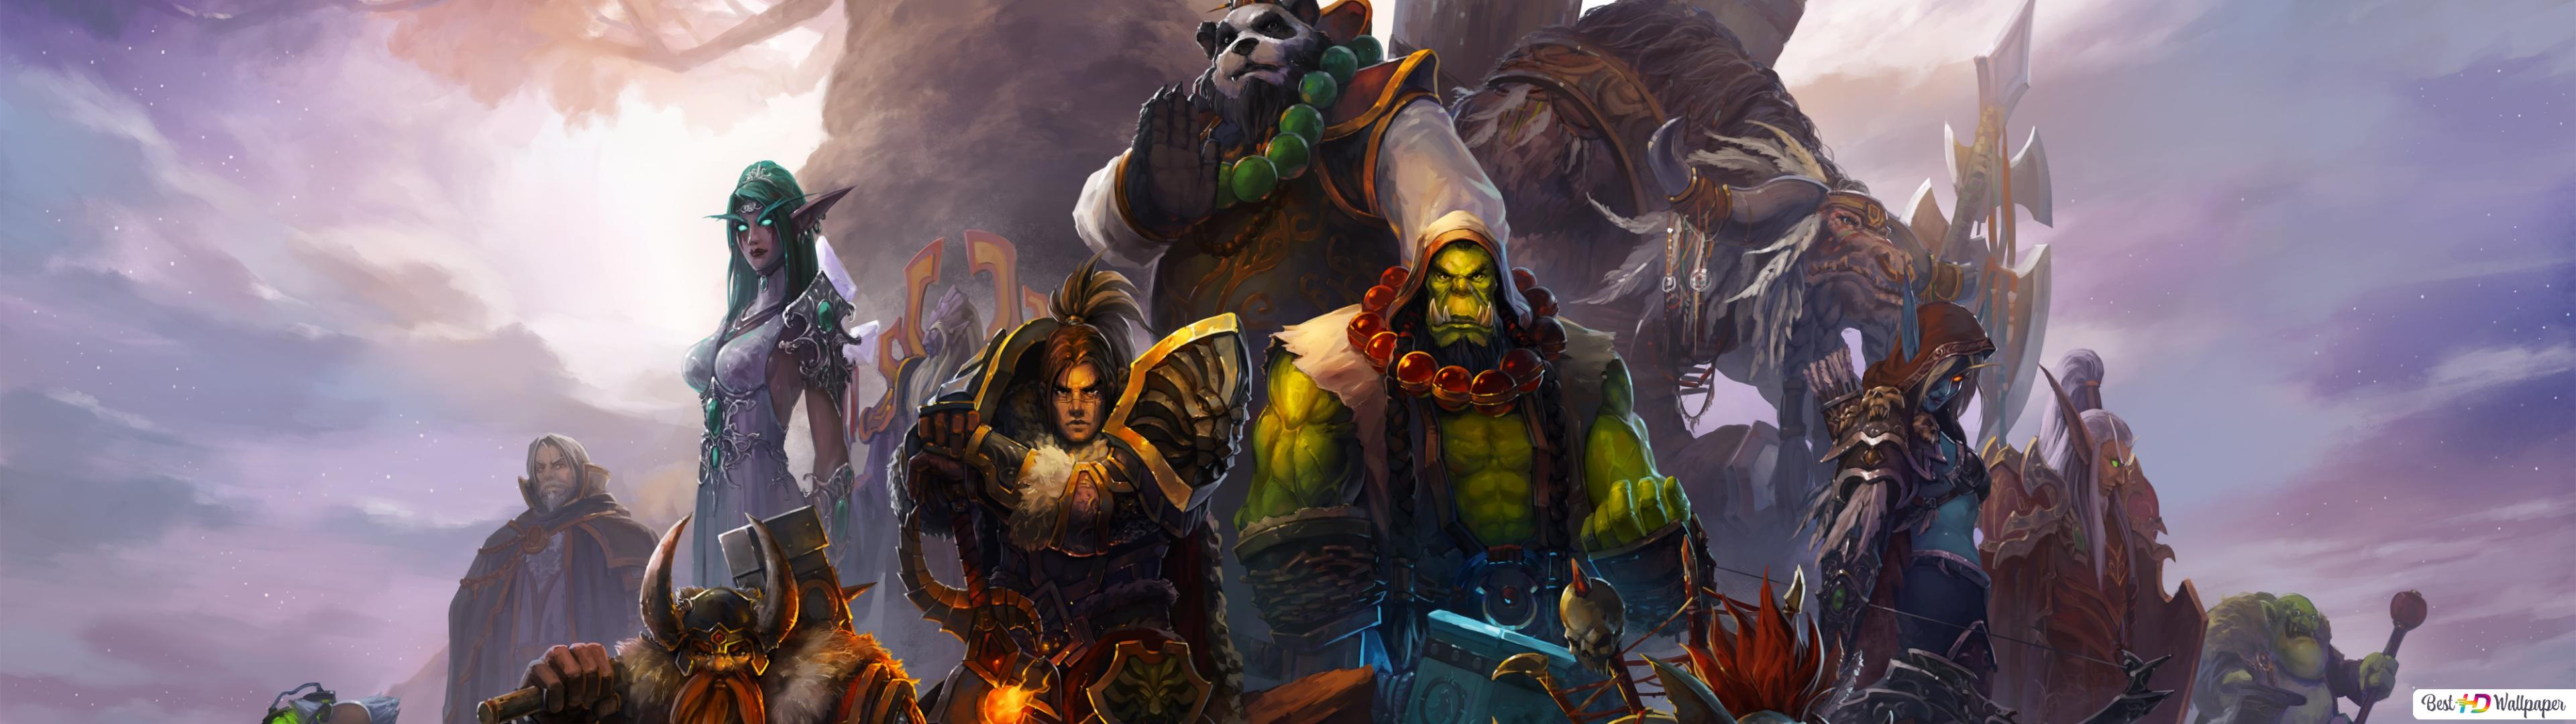 World Of Warcraft Orc Warrior Hd Wallpaper Download